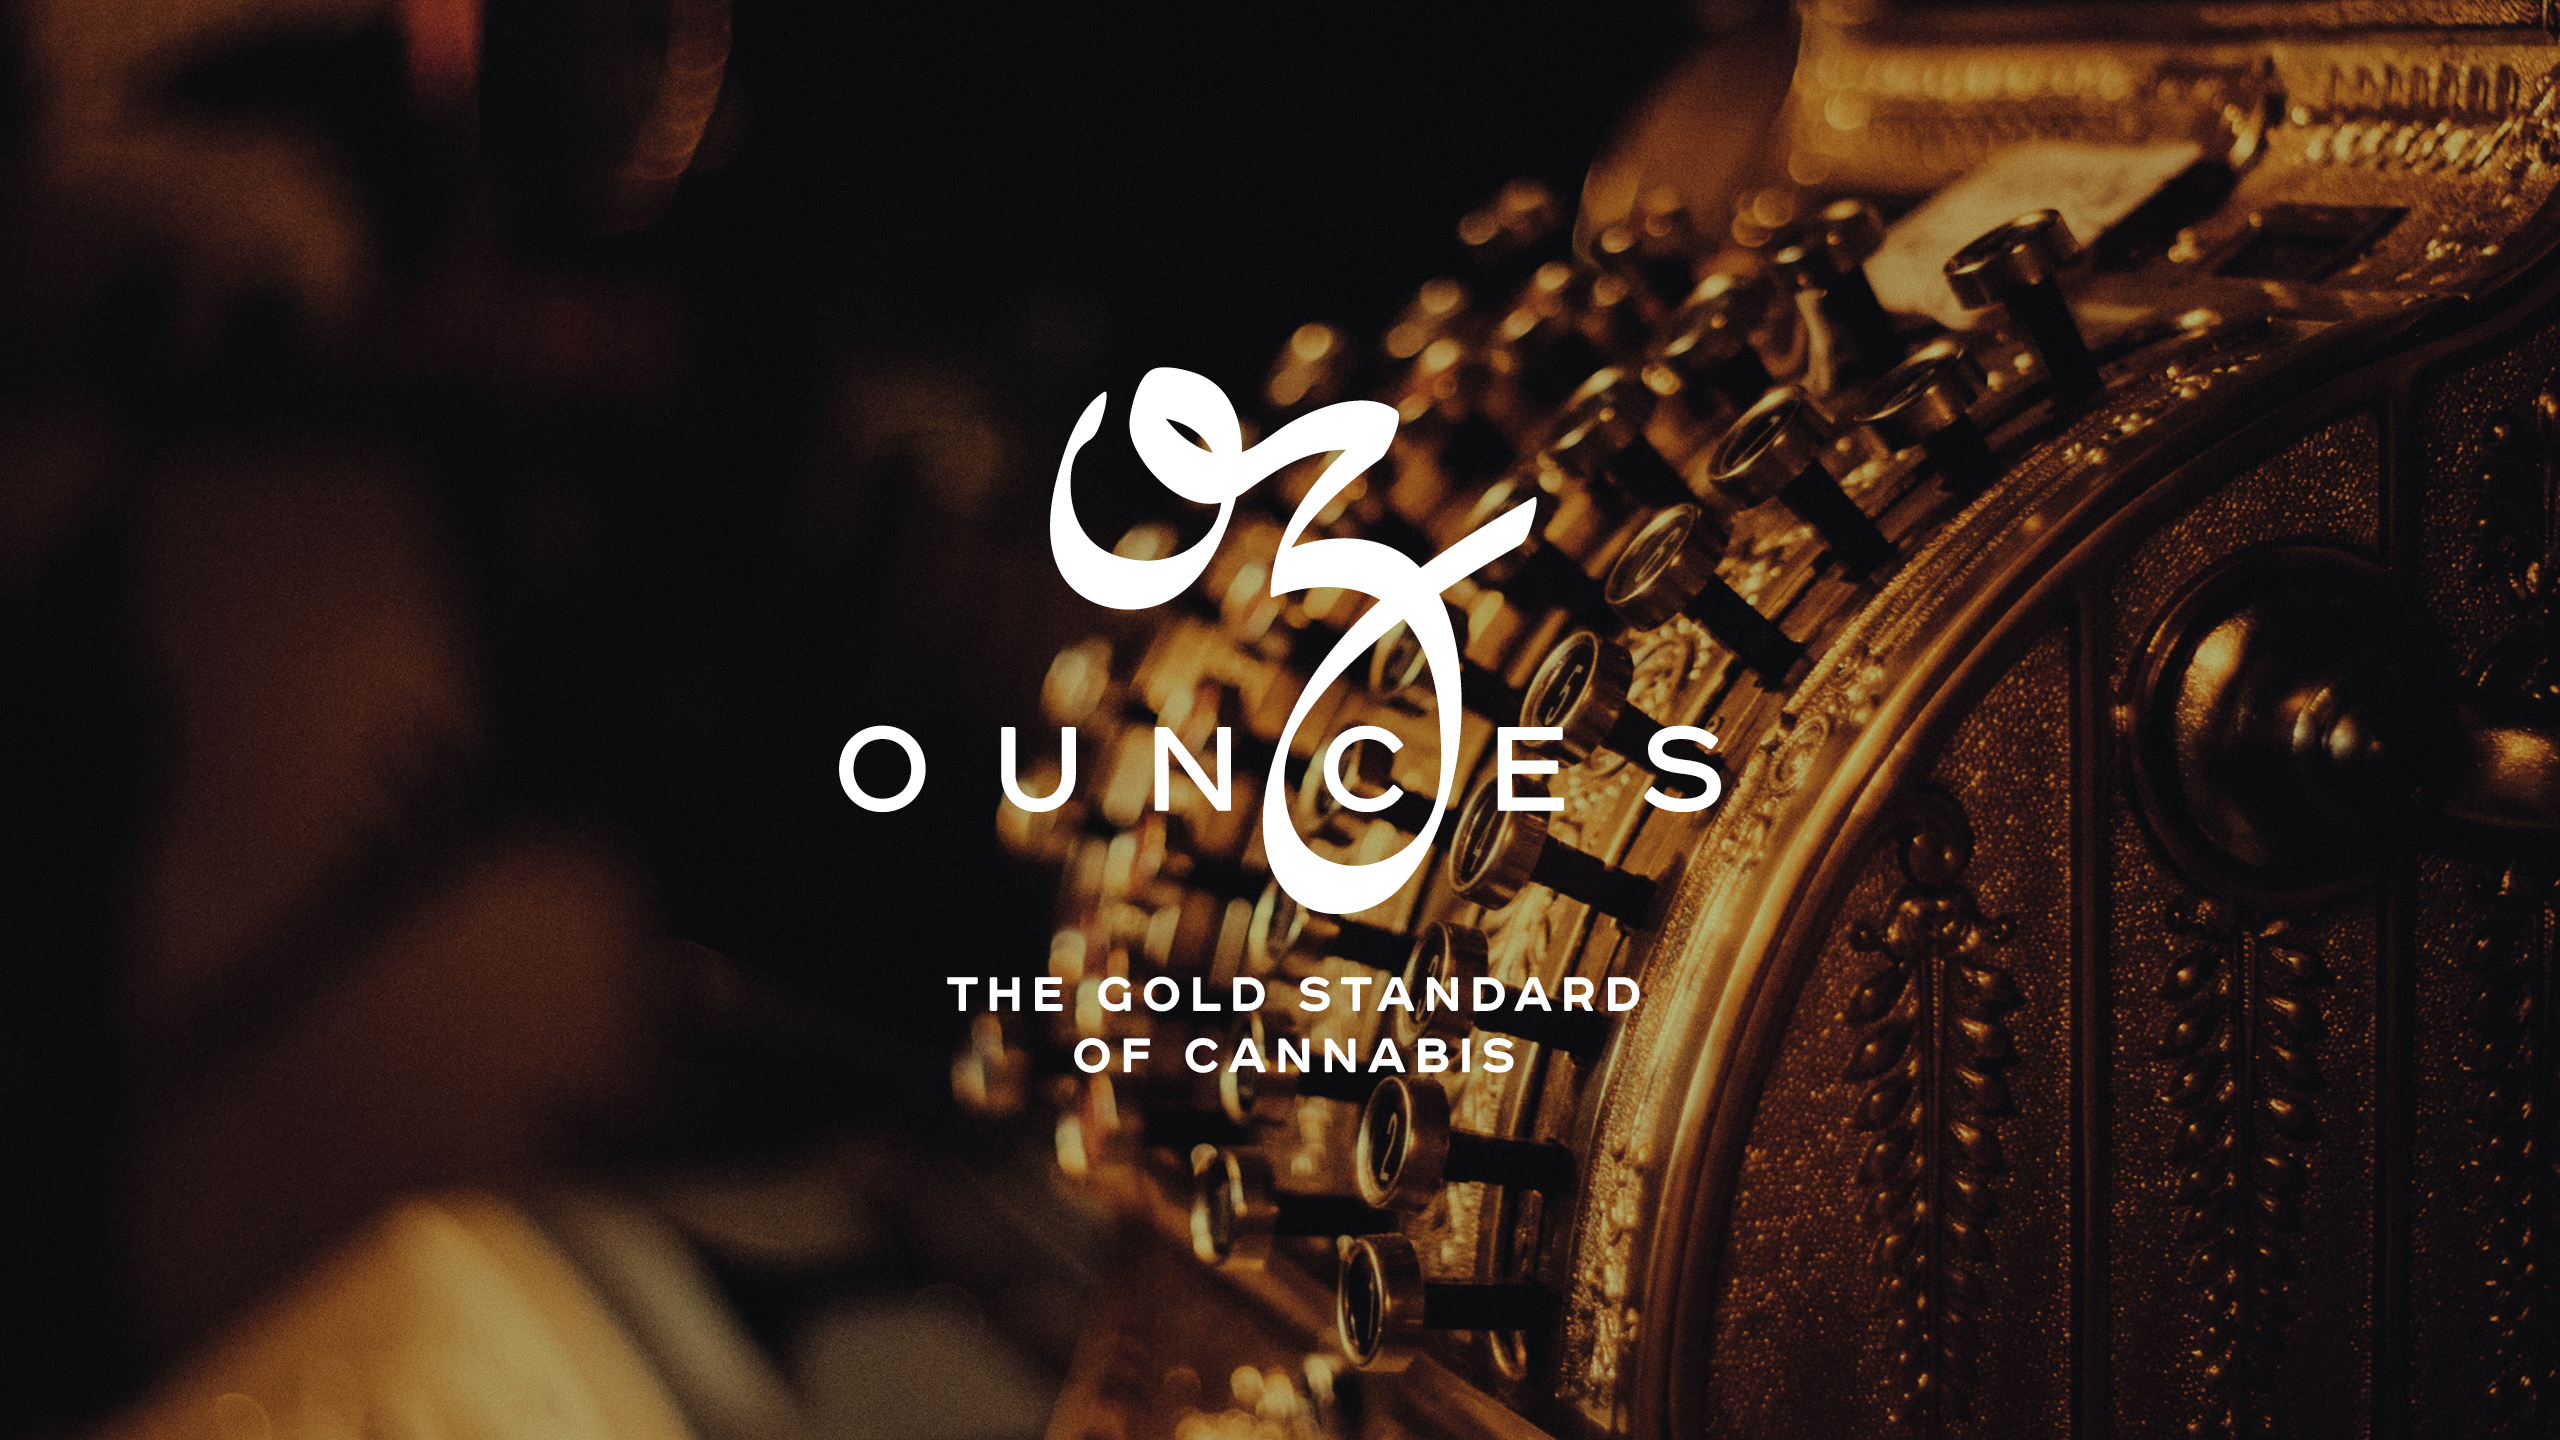 Ounces Brand Identity by High Road Design Studio